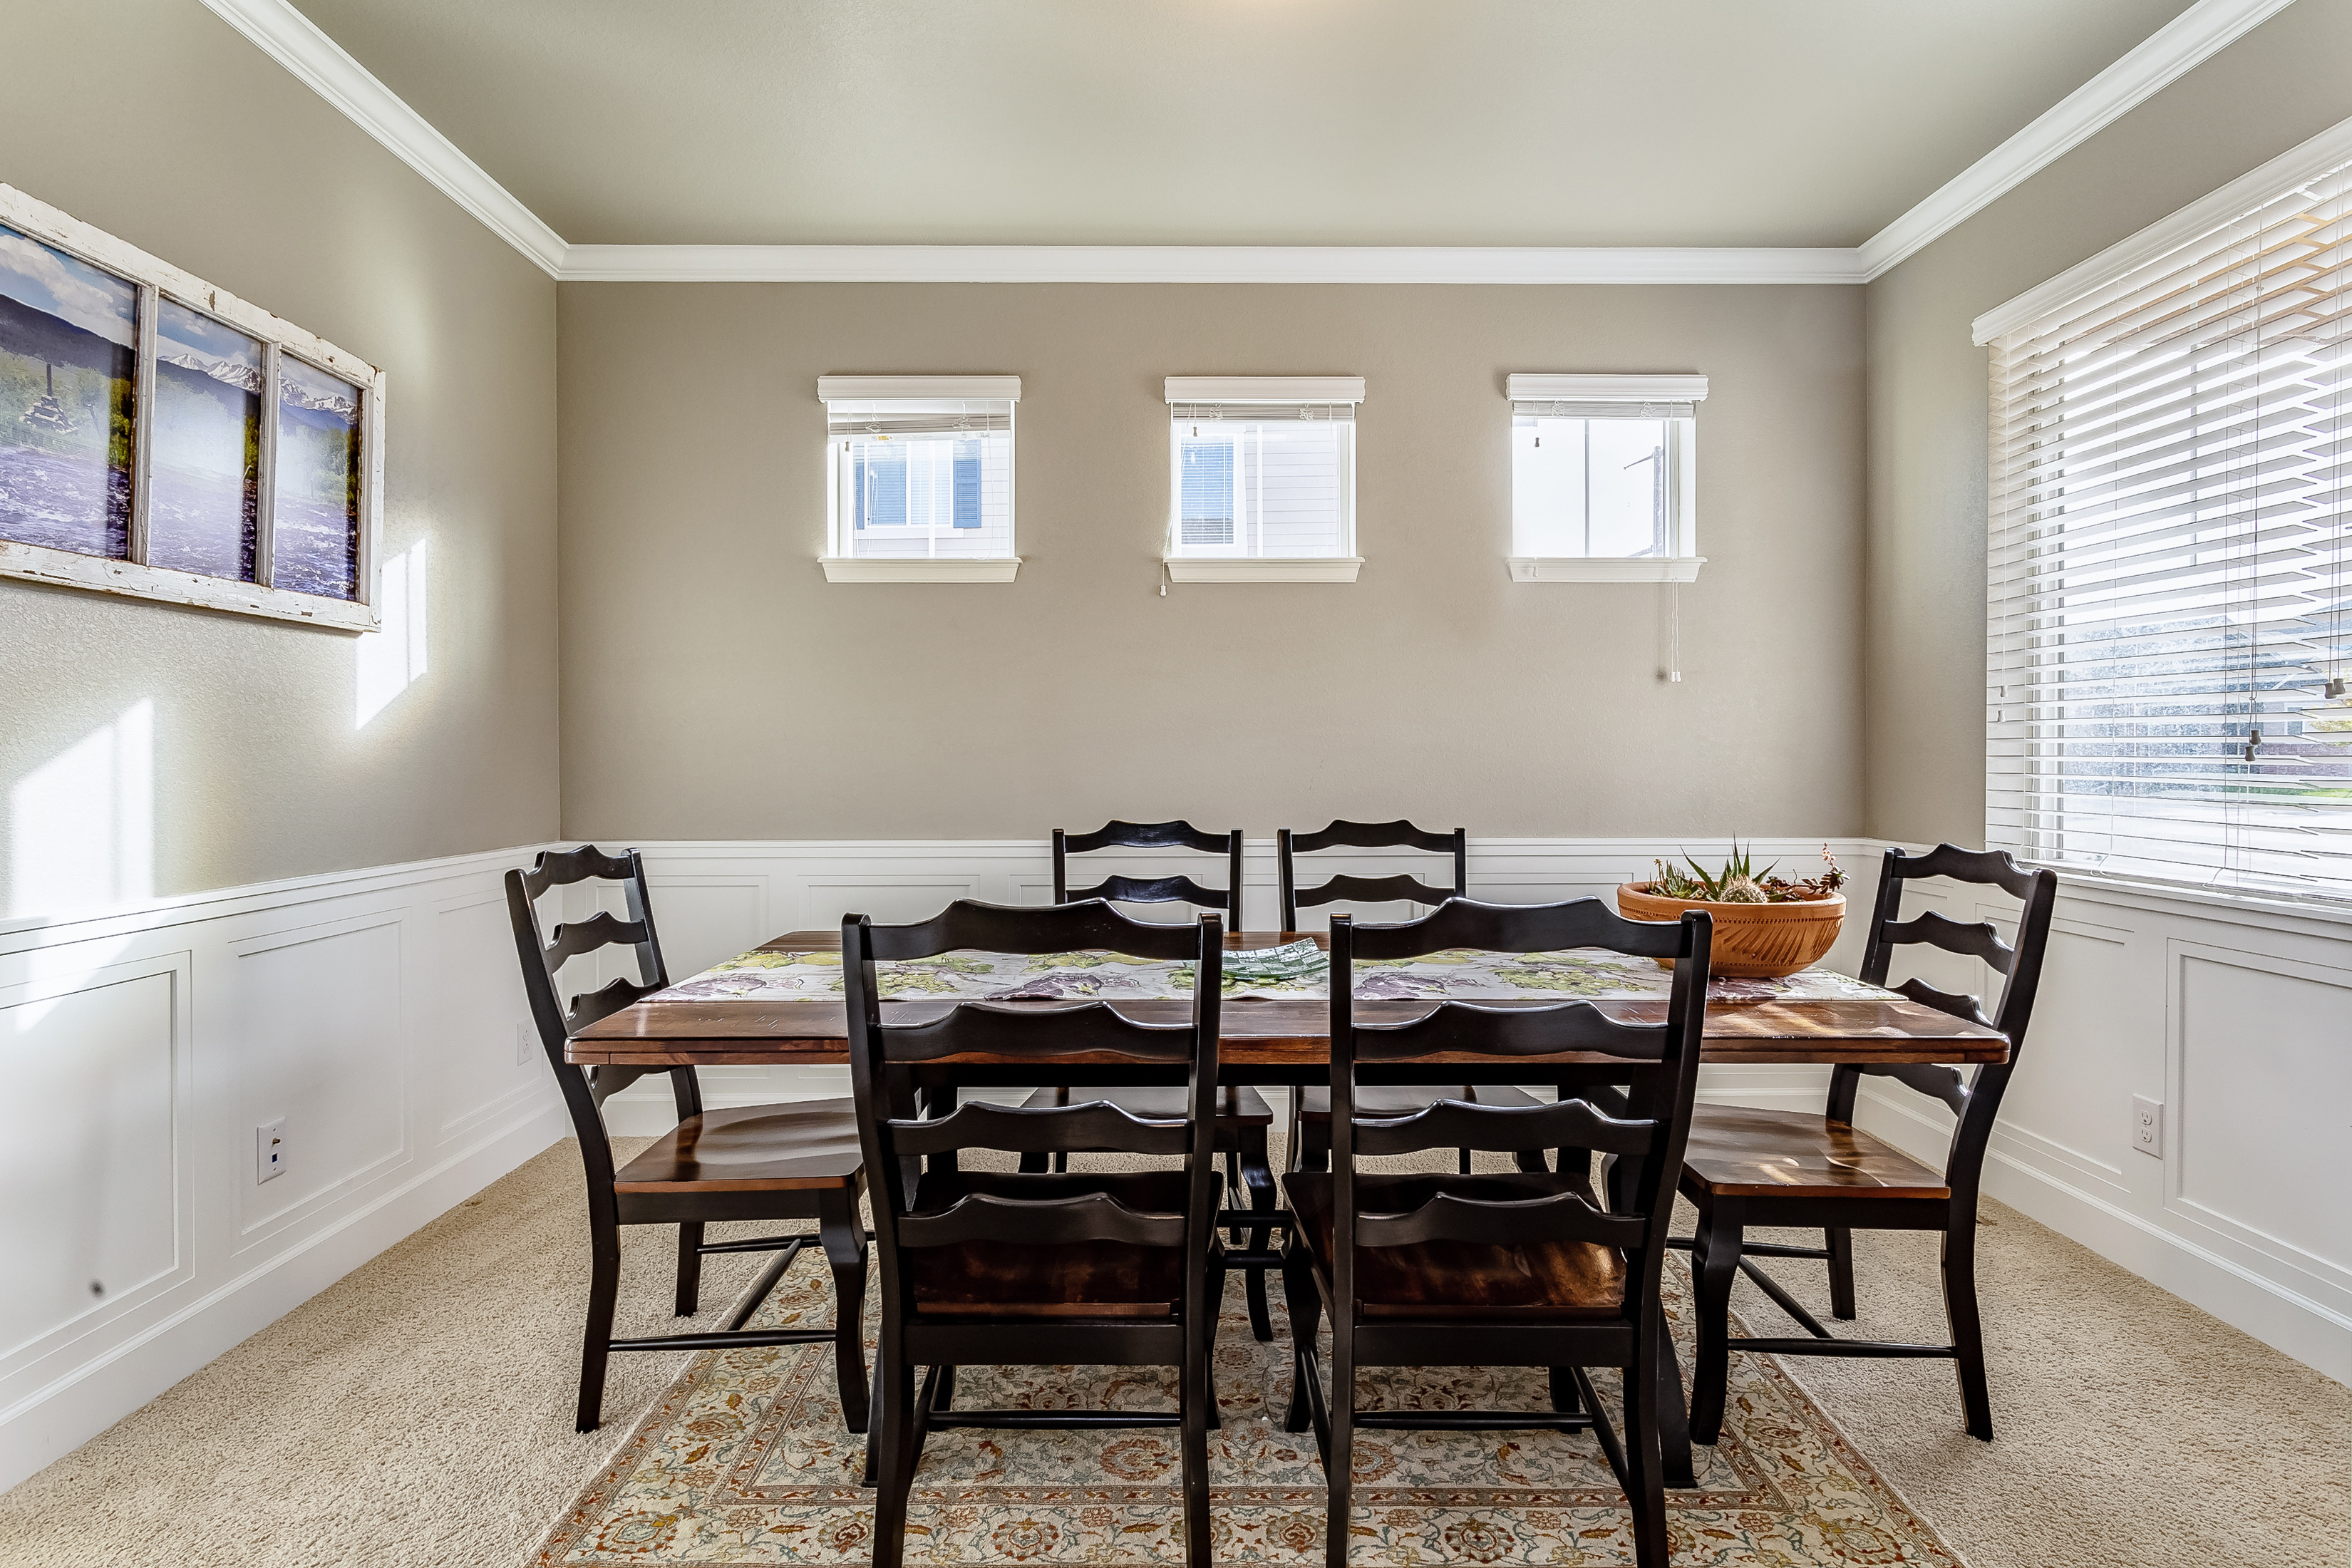 Dining w/wainscoting & crown molding